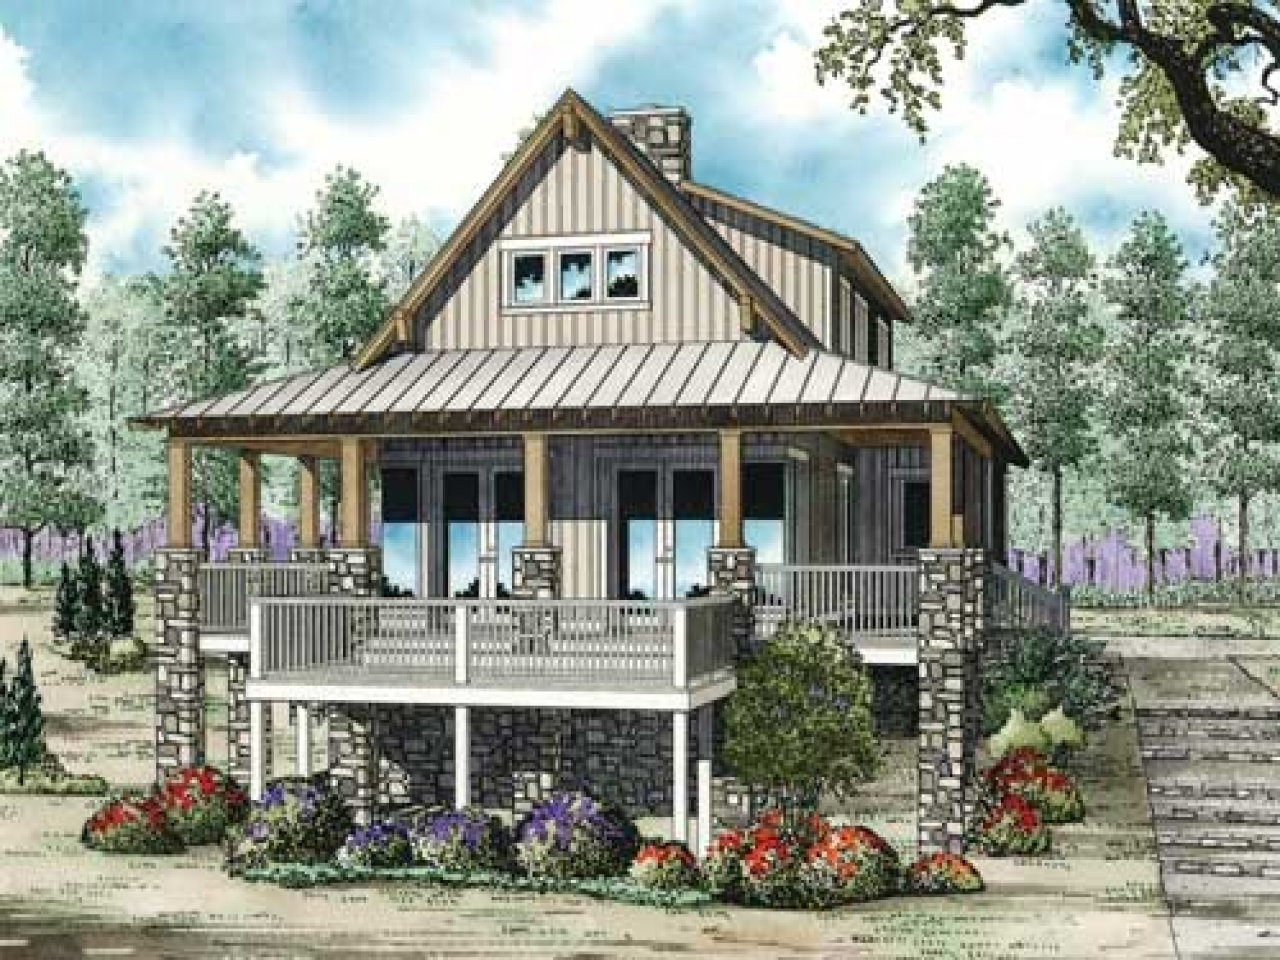 River House On Stilts Plans on house built on pilings plans, create your own house plans, stilted house plans, modern stilt house plans, river style house plans, florida stilt house plans, stilt home floor plans, river road house, coastal stilt house plans, manufactured stilt home plans, river house plans on pilings, river house plans southern living, river house plans with porches, piling and stilt house plans, off the ground house plans, bungalow house plans, small stilt house plans, elevated stilt home plans, river house furniture, river cottage plans,